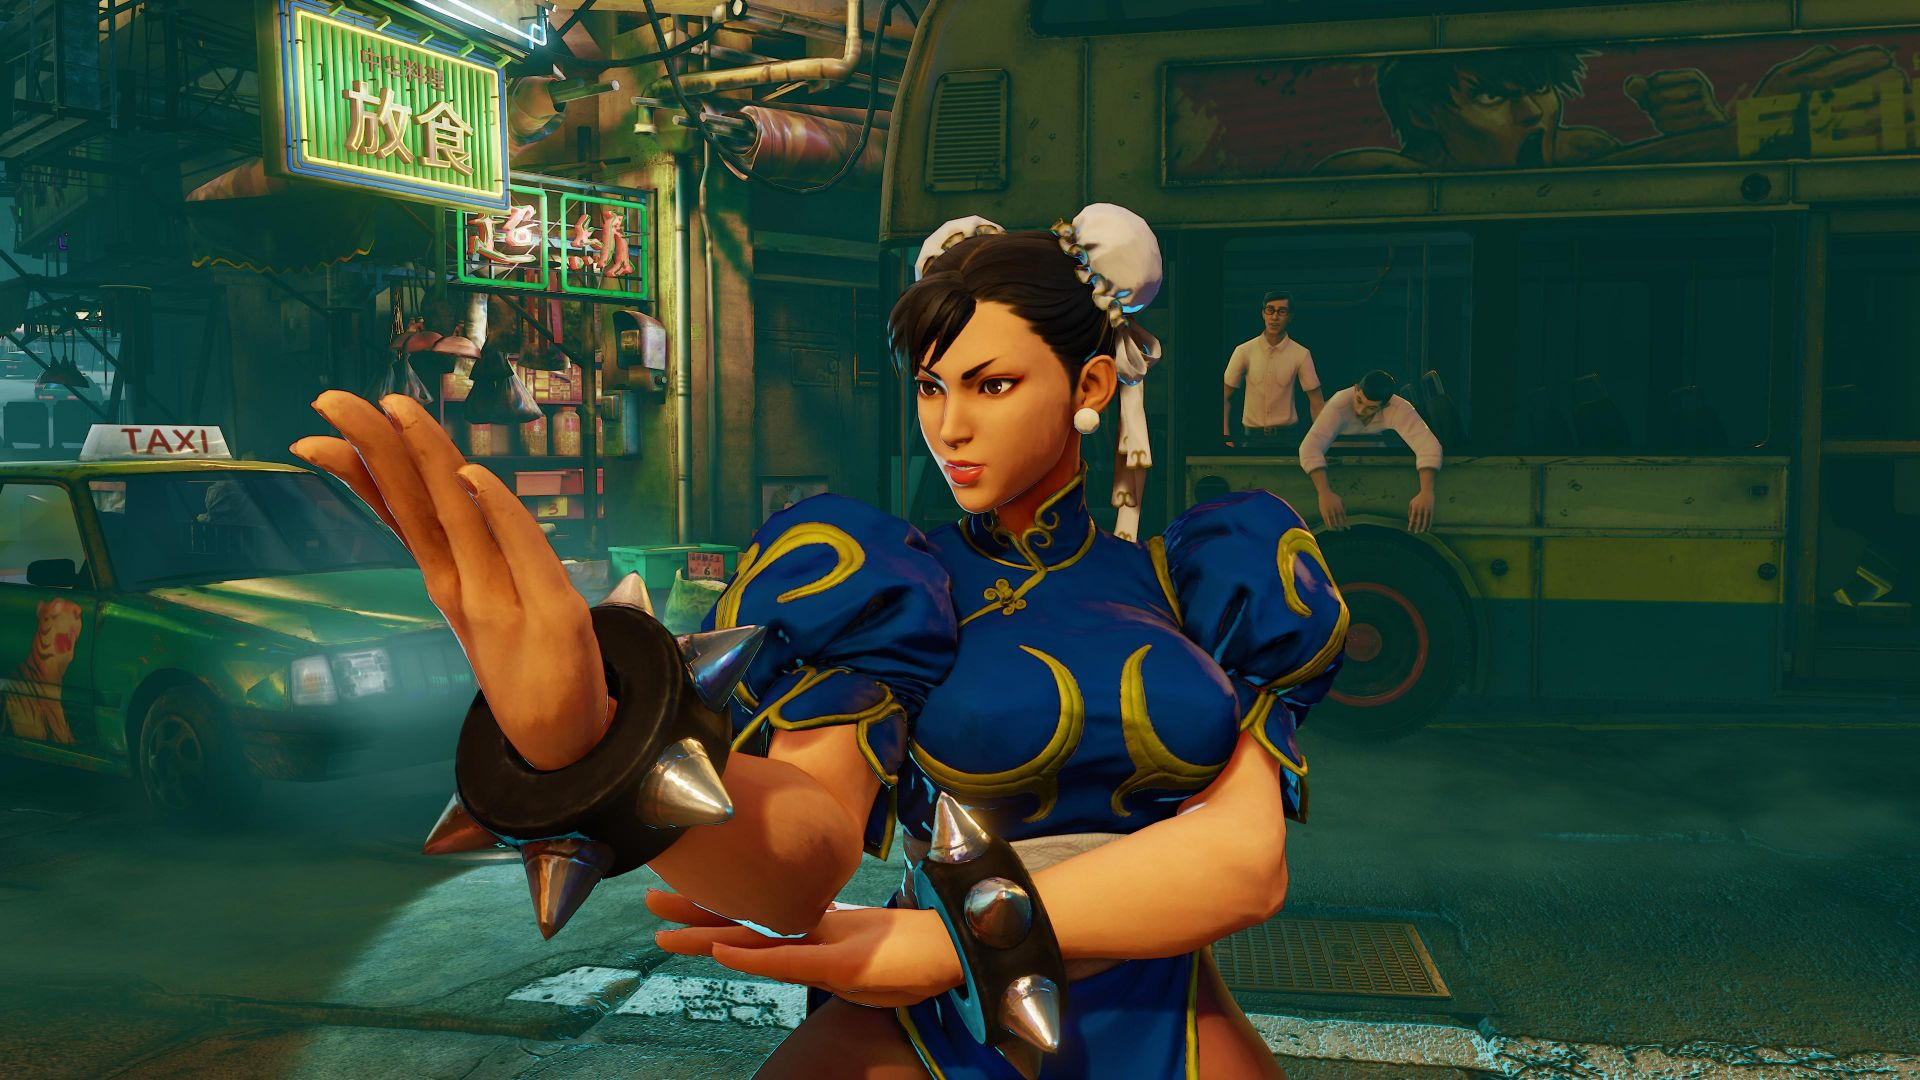 Street Fighter 5, Чан-Ли, Лучшие игры, фентези, ПК, PS4, Street Fighter 5, CHUN-LI, Best Games, fantasy, PC, PS4 (horizontal)